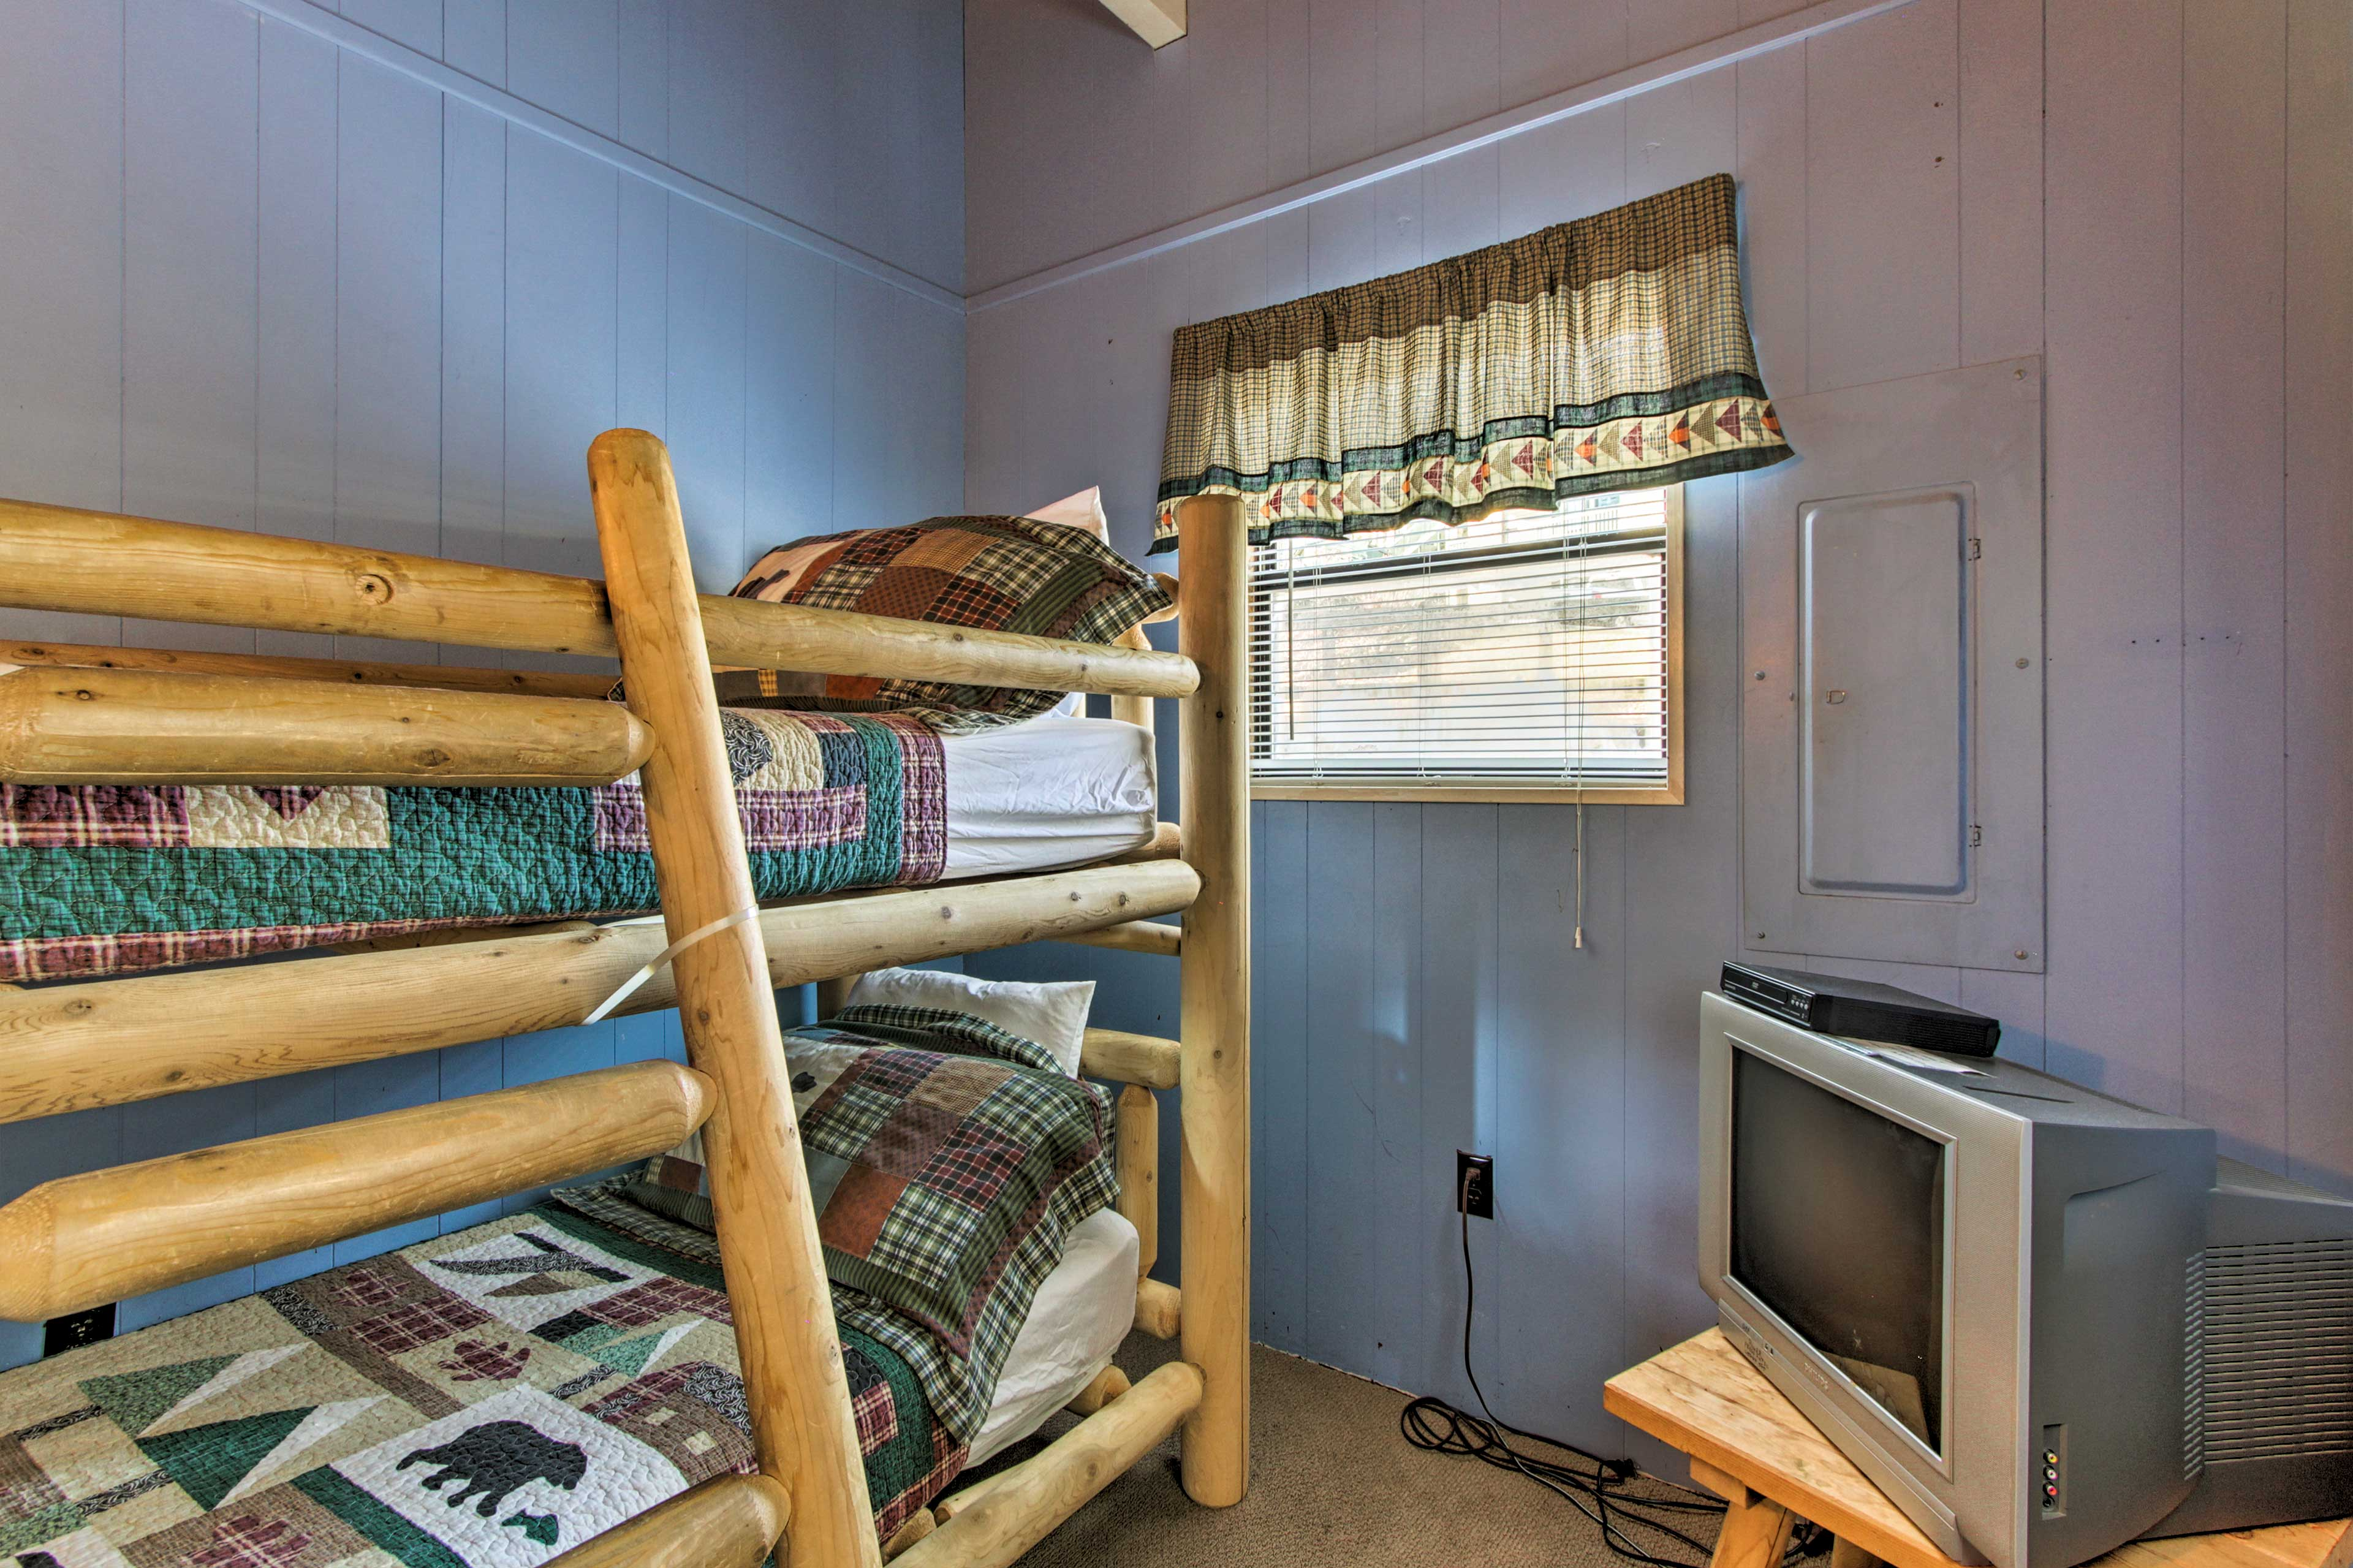 Tuck the kids into the twin-over-twin bunk bed in the final room.